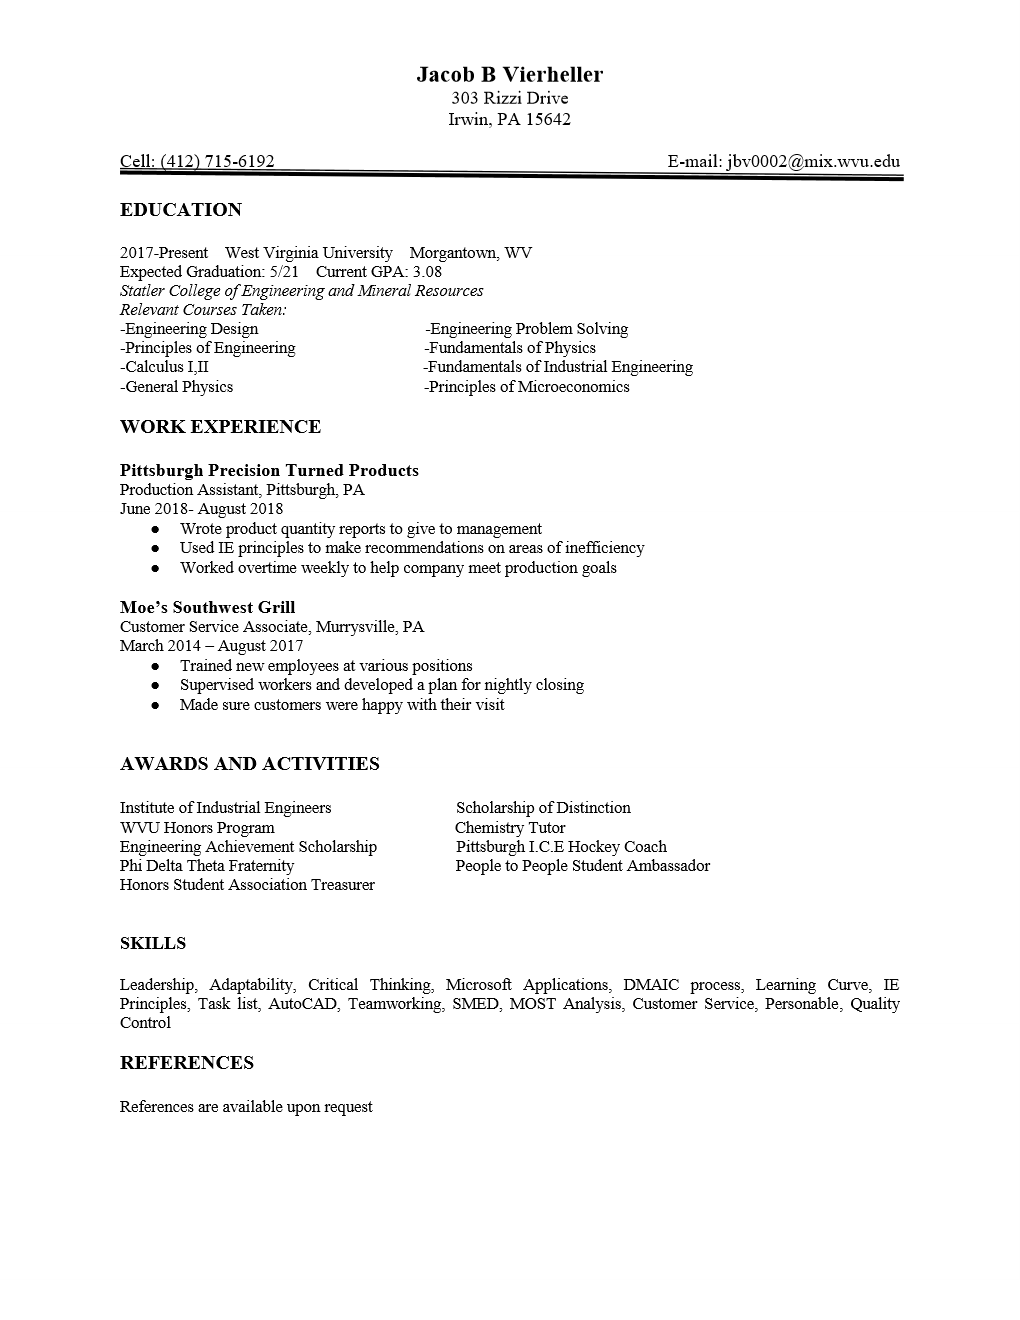 College Sophomore Resume Jacob Vierheller Wvu Ie